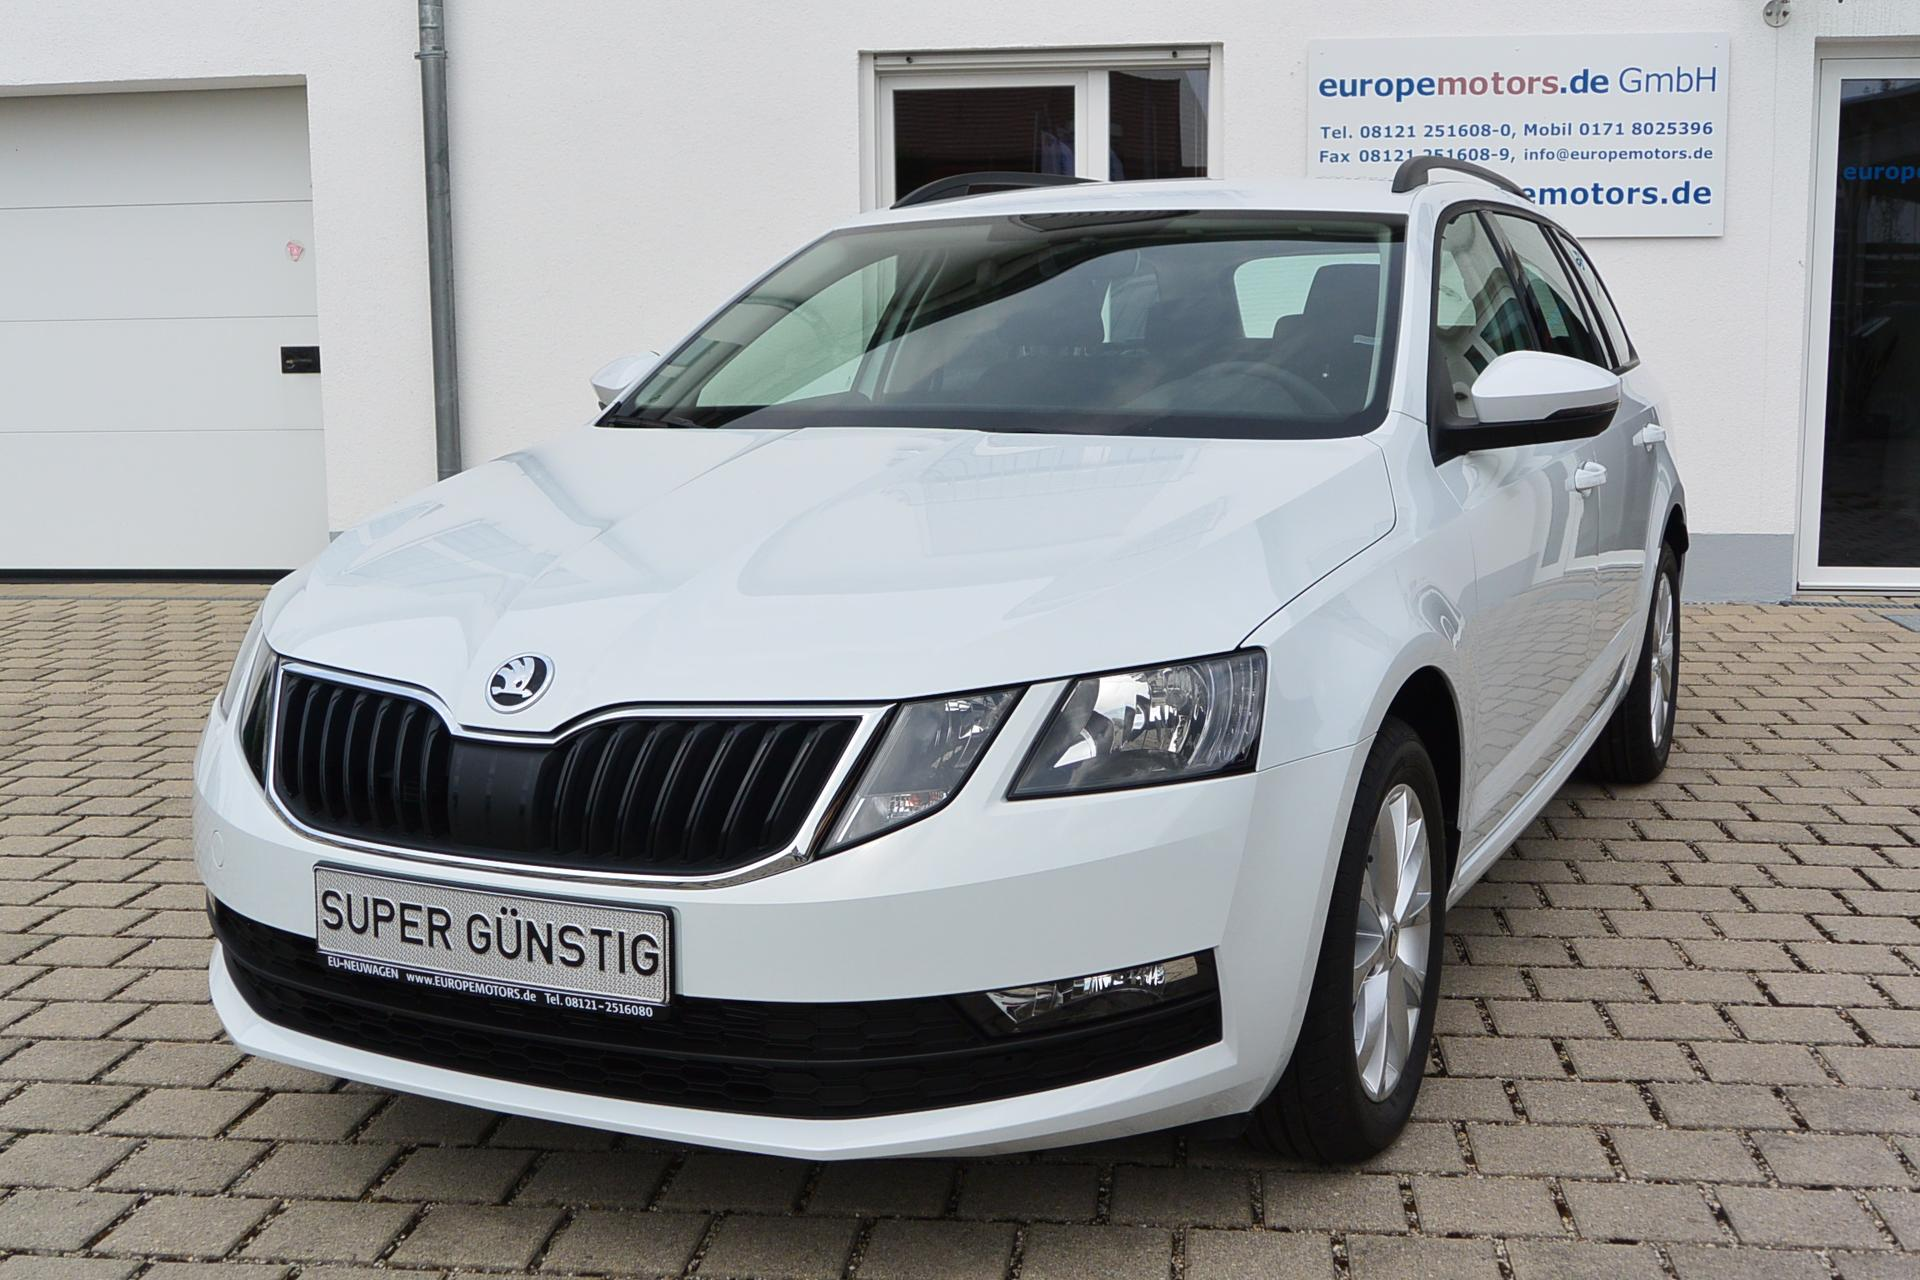 skoda octavia combi ambition 1 6 tdi scr 4x4 85 kw 115 ps. Black Bedroom Furniture Sets. Home Design Ideas